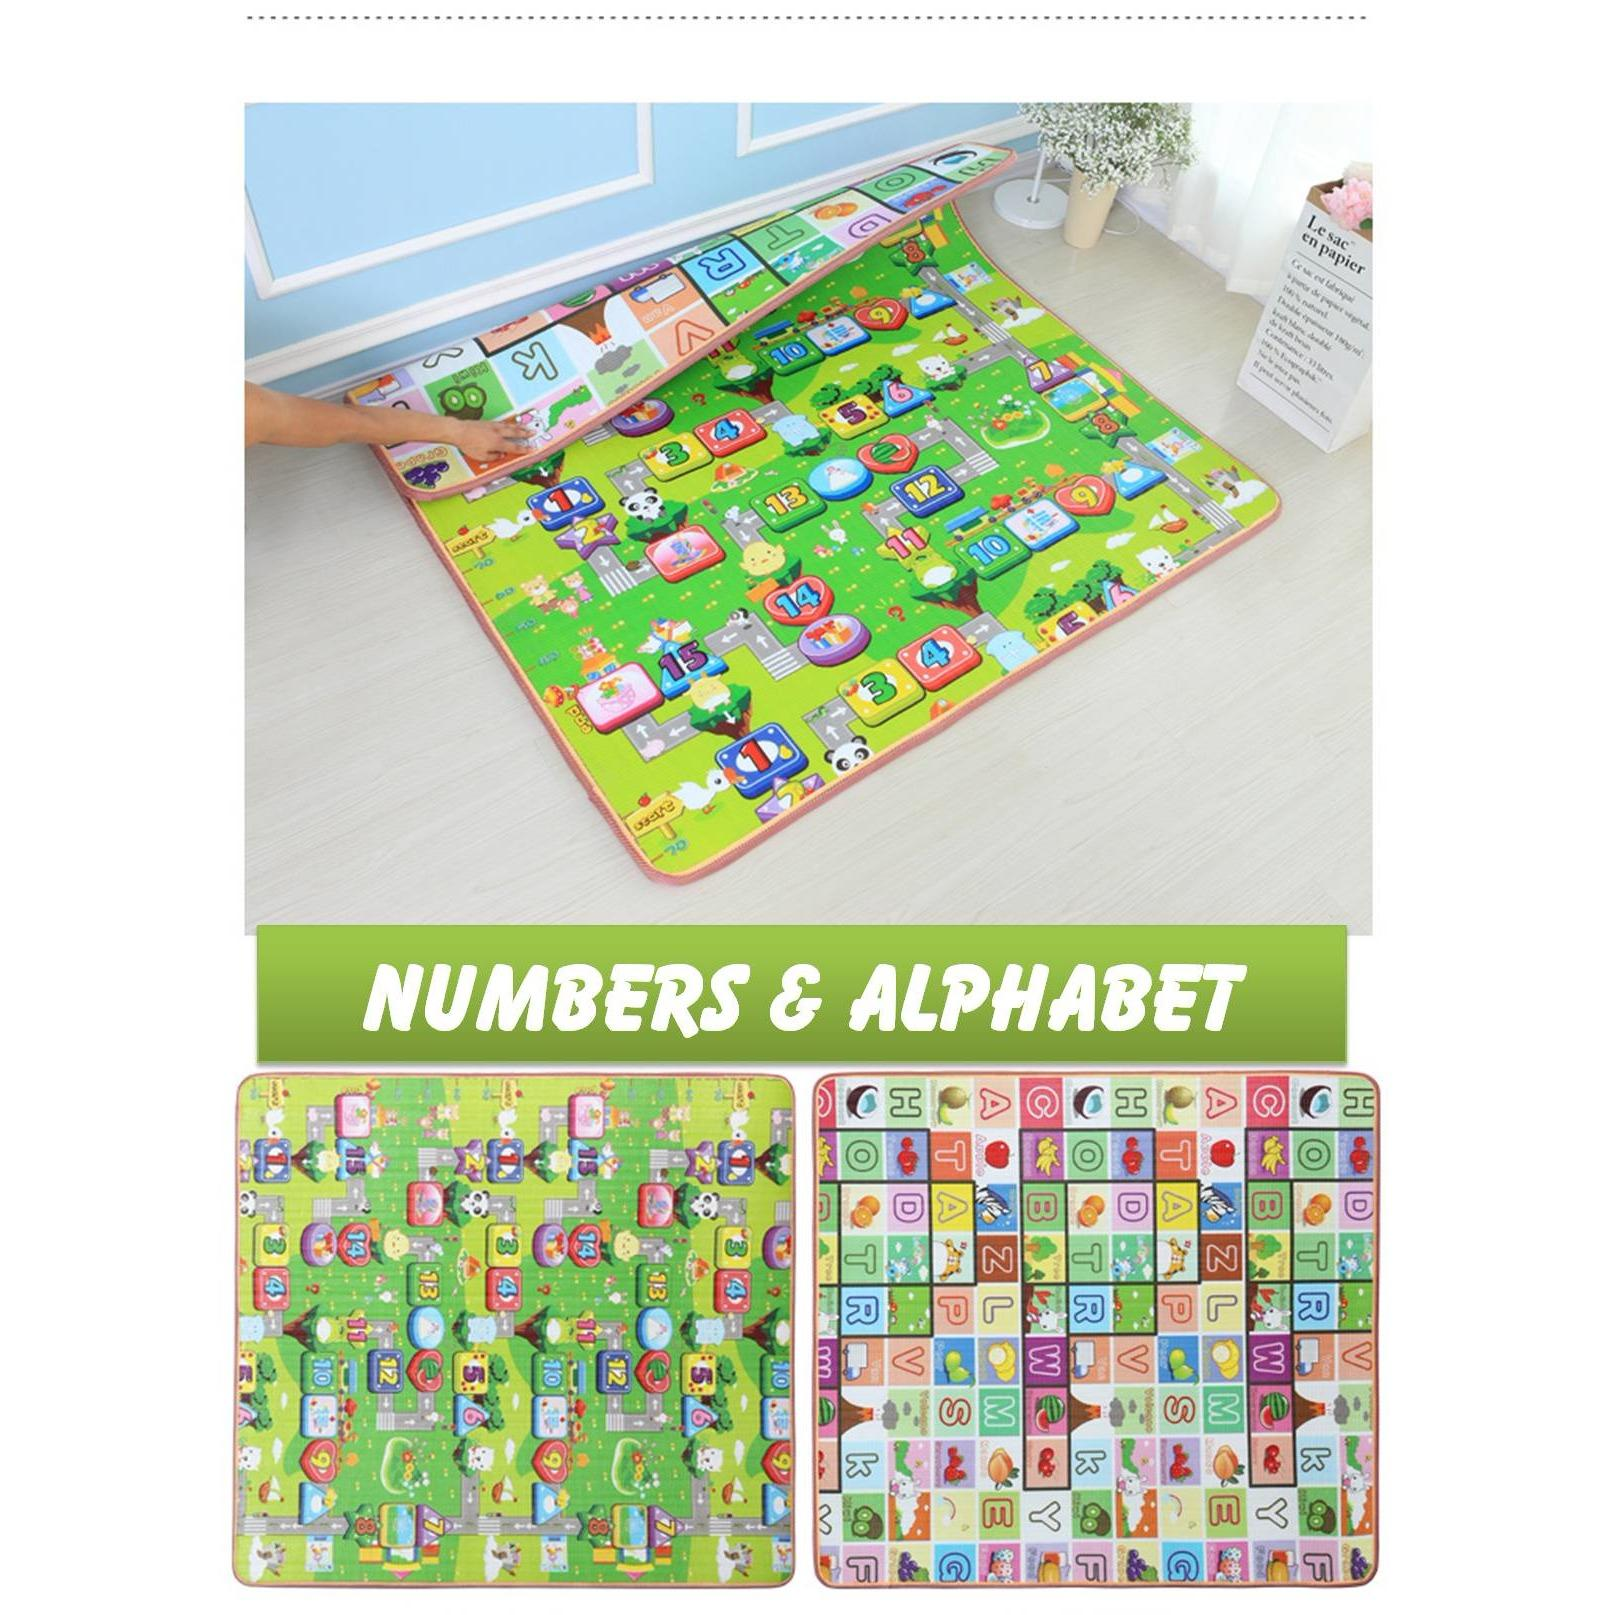 these themed mat toddlers mats measure transportation softtiles foam kids for pinterest on images large playrooms play best playing